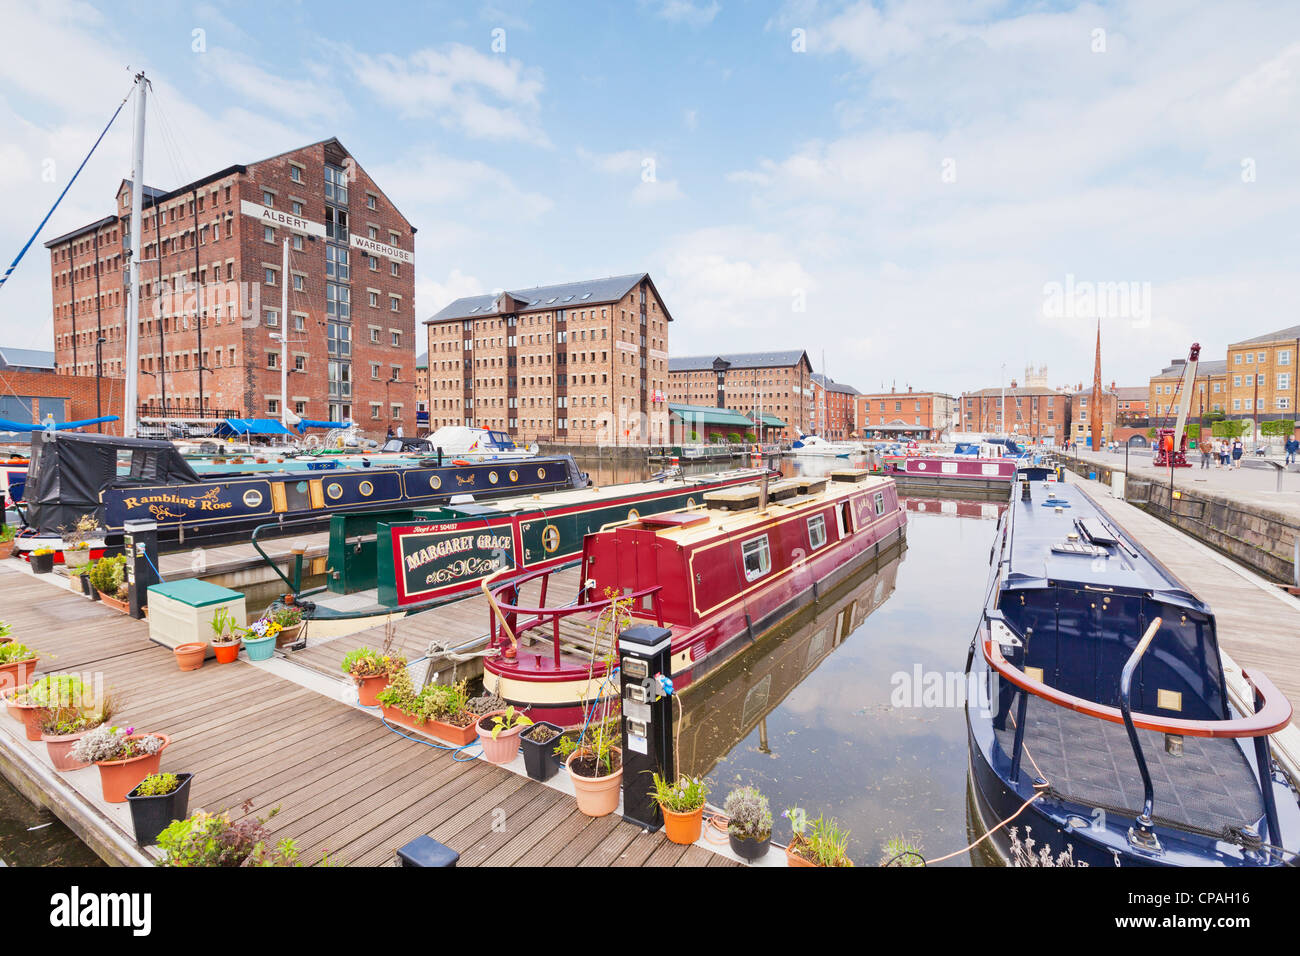 The Victoria Basin at the restored Gloucester Docks. - Stock Image